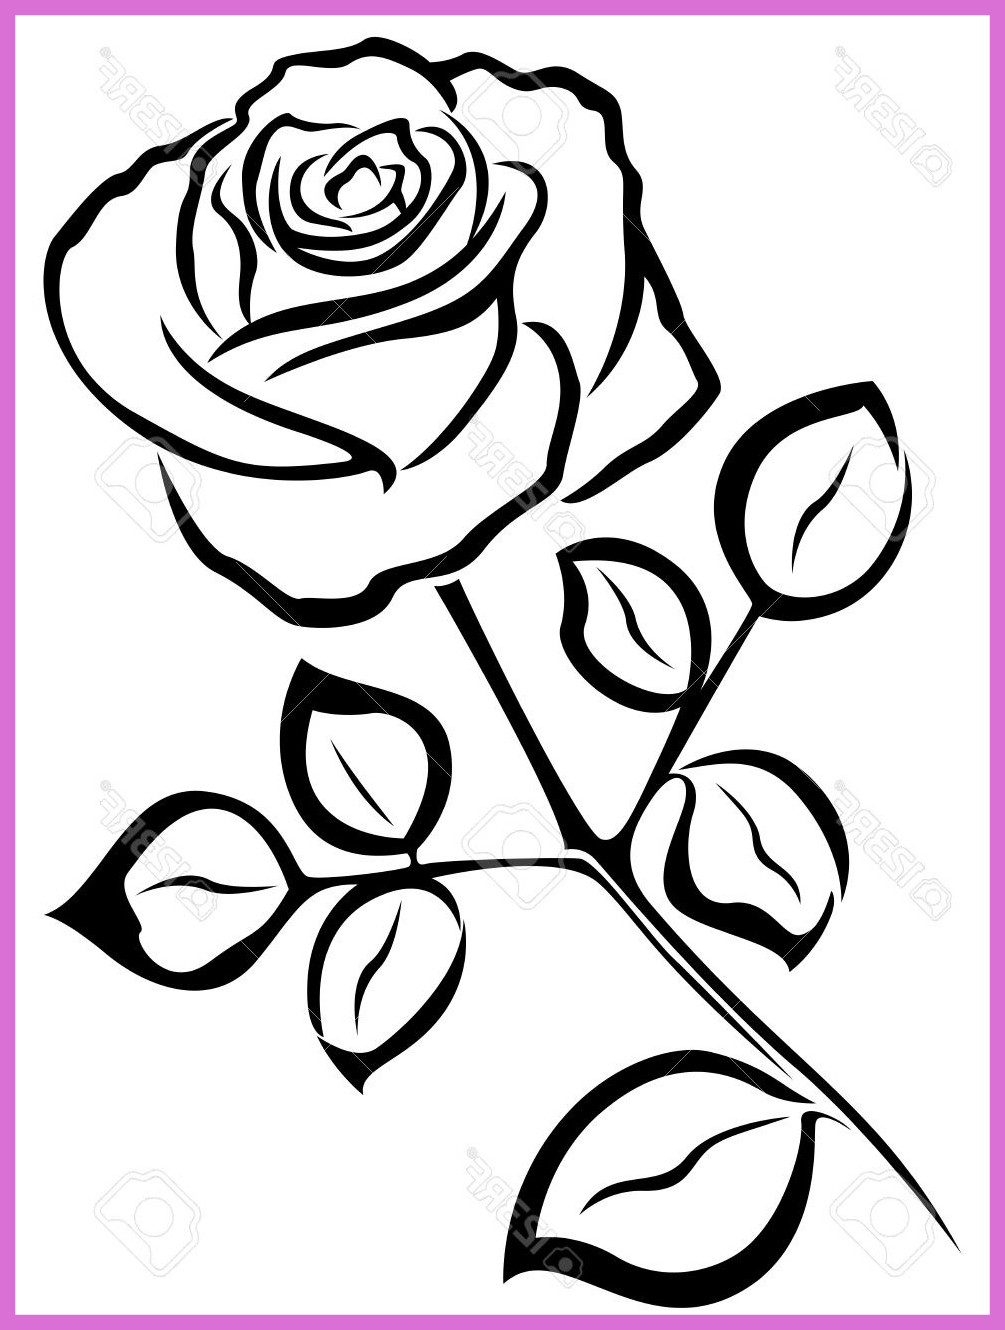 1005x1330 Astonishing How To Draw A Realistic Rose Flower With Pic Oil